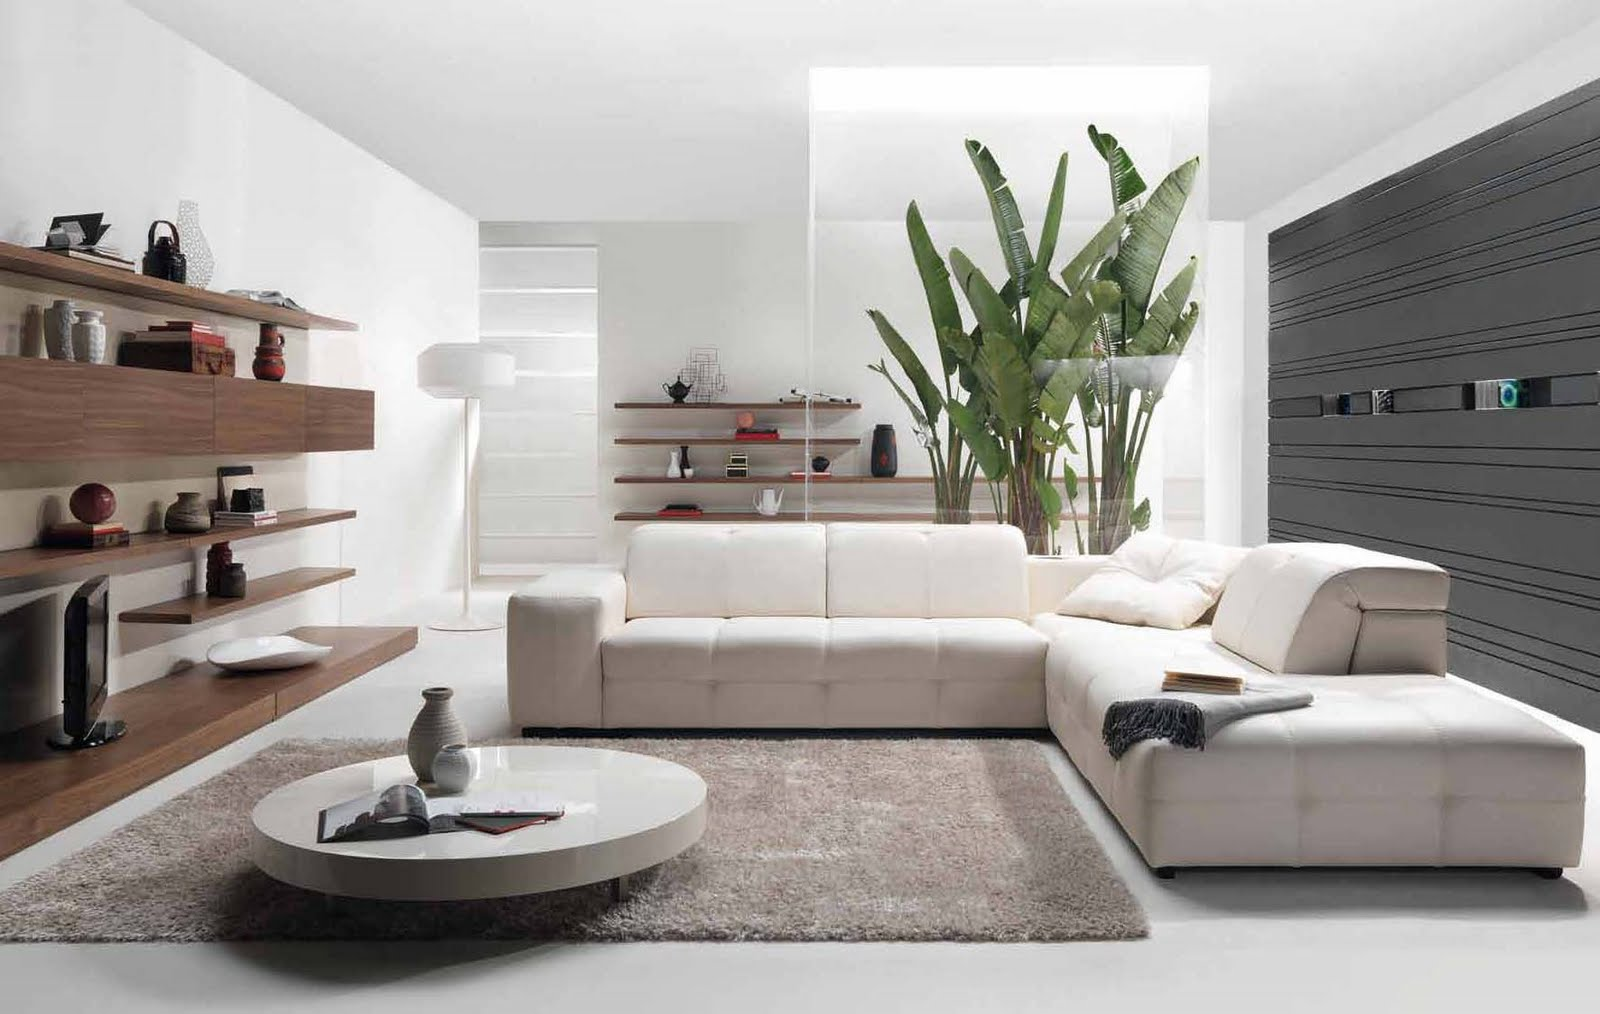 Future house design modern living room interior design for Modern living room decor